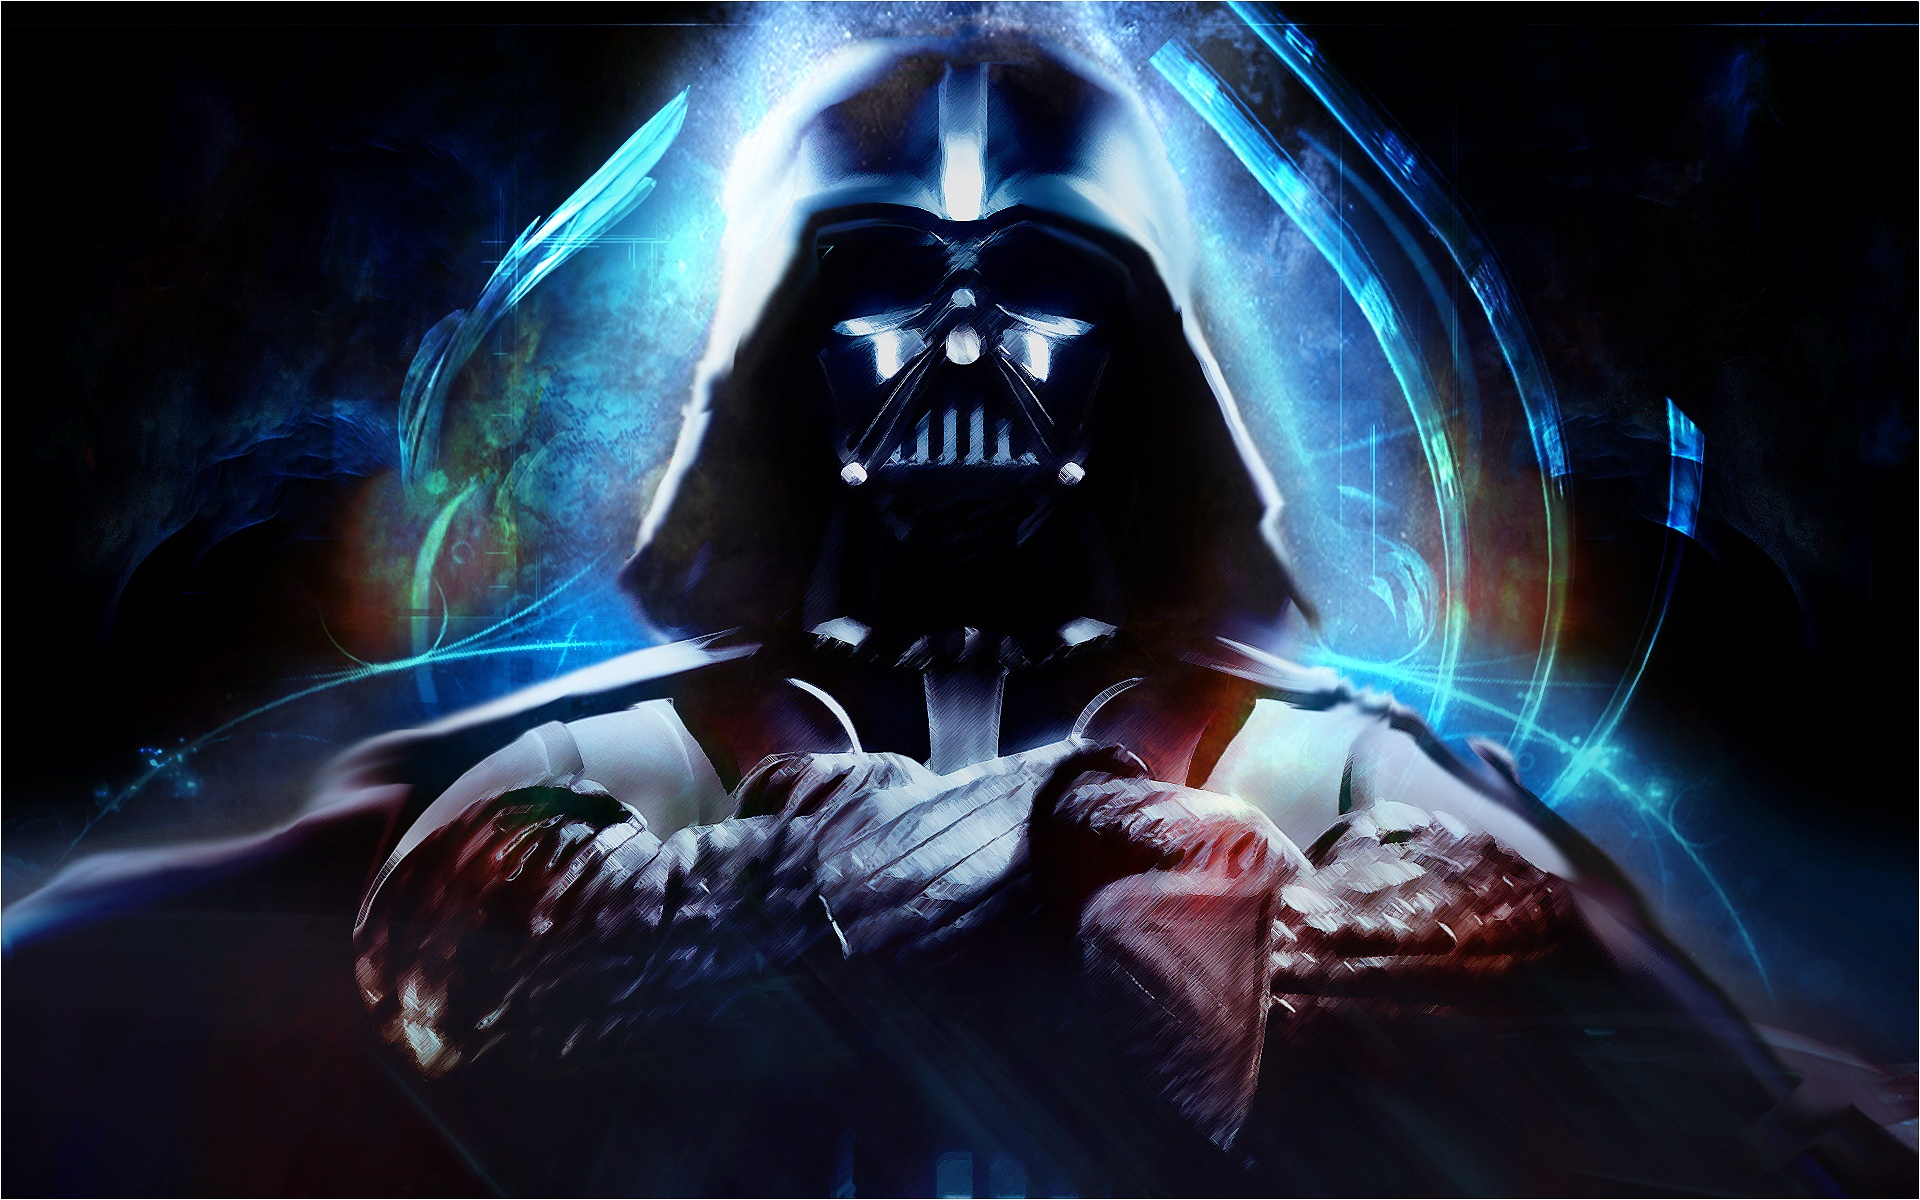 Star wars hintergrundbilder 1920x1200 hintergrundbilder download star